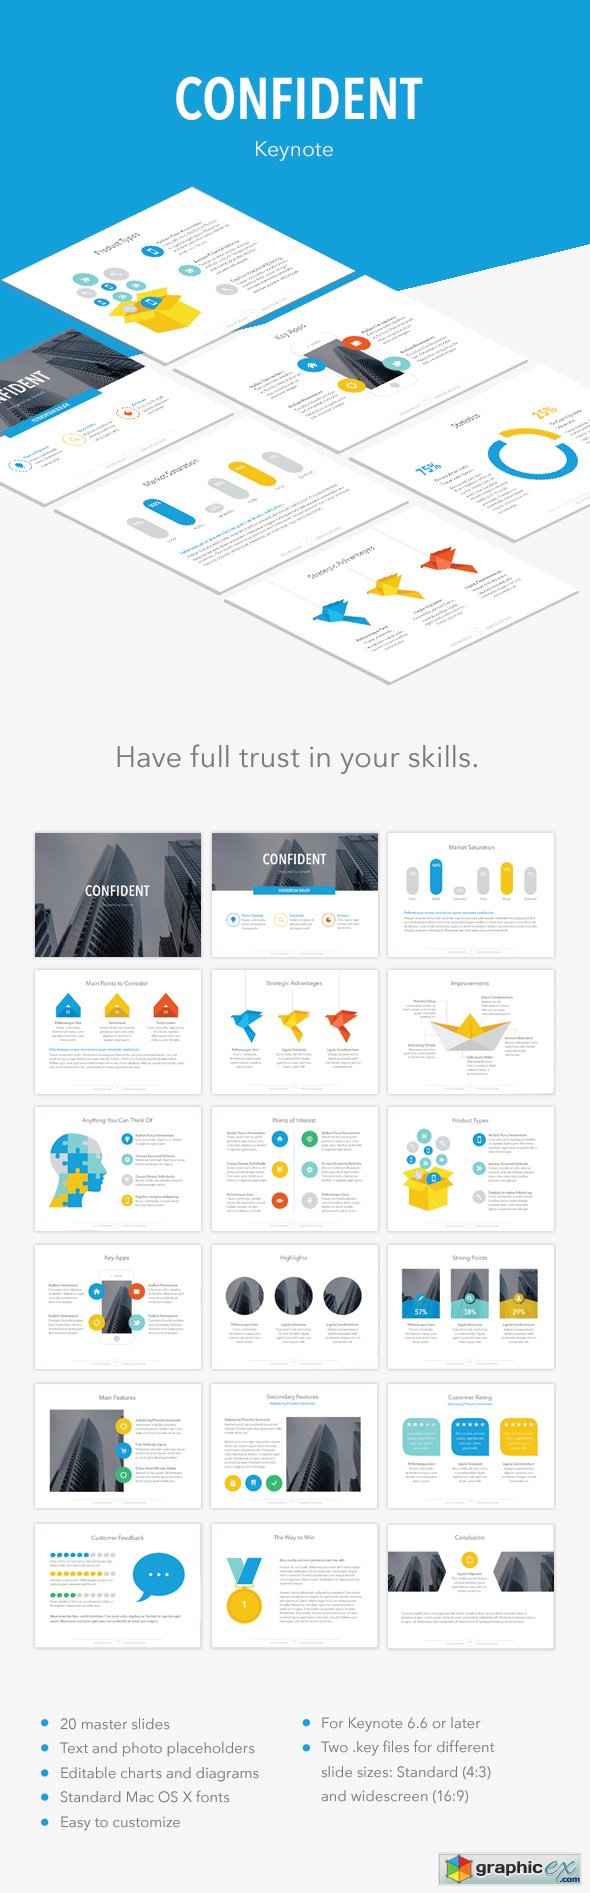 Confident PowerPoint Template 14726315